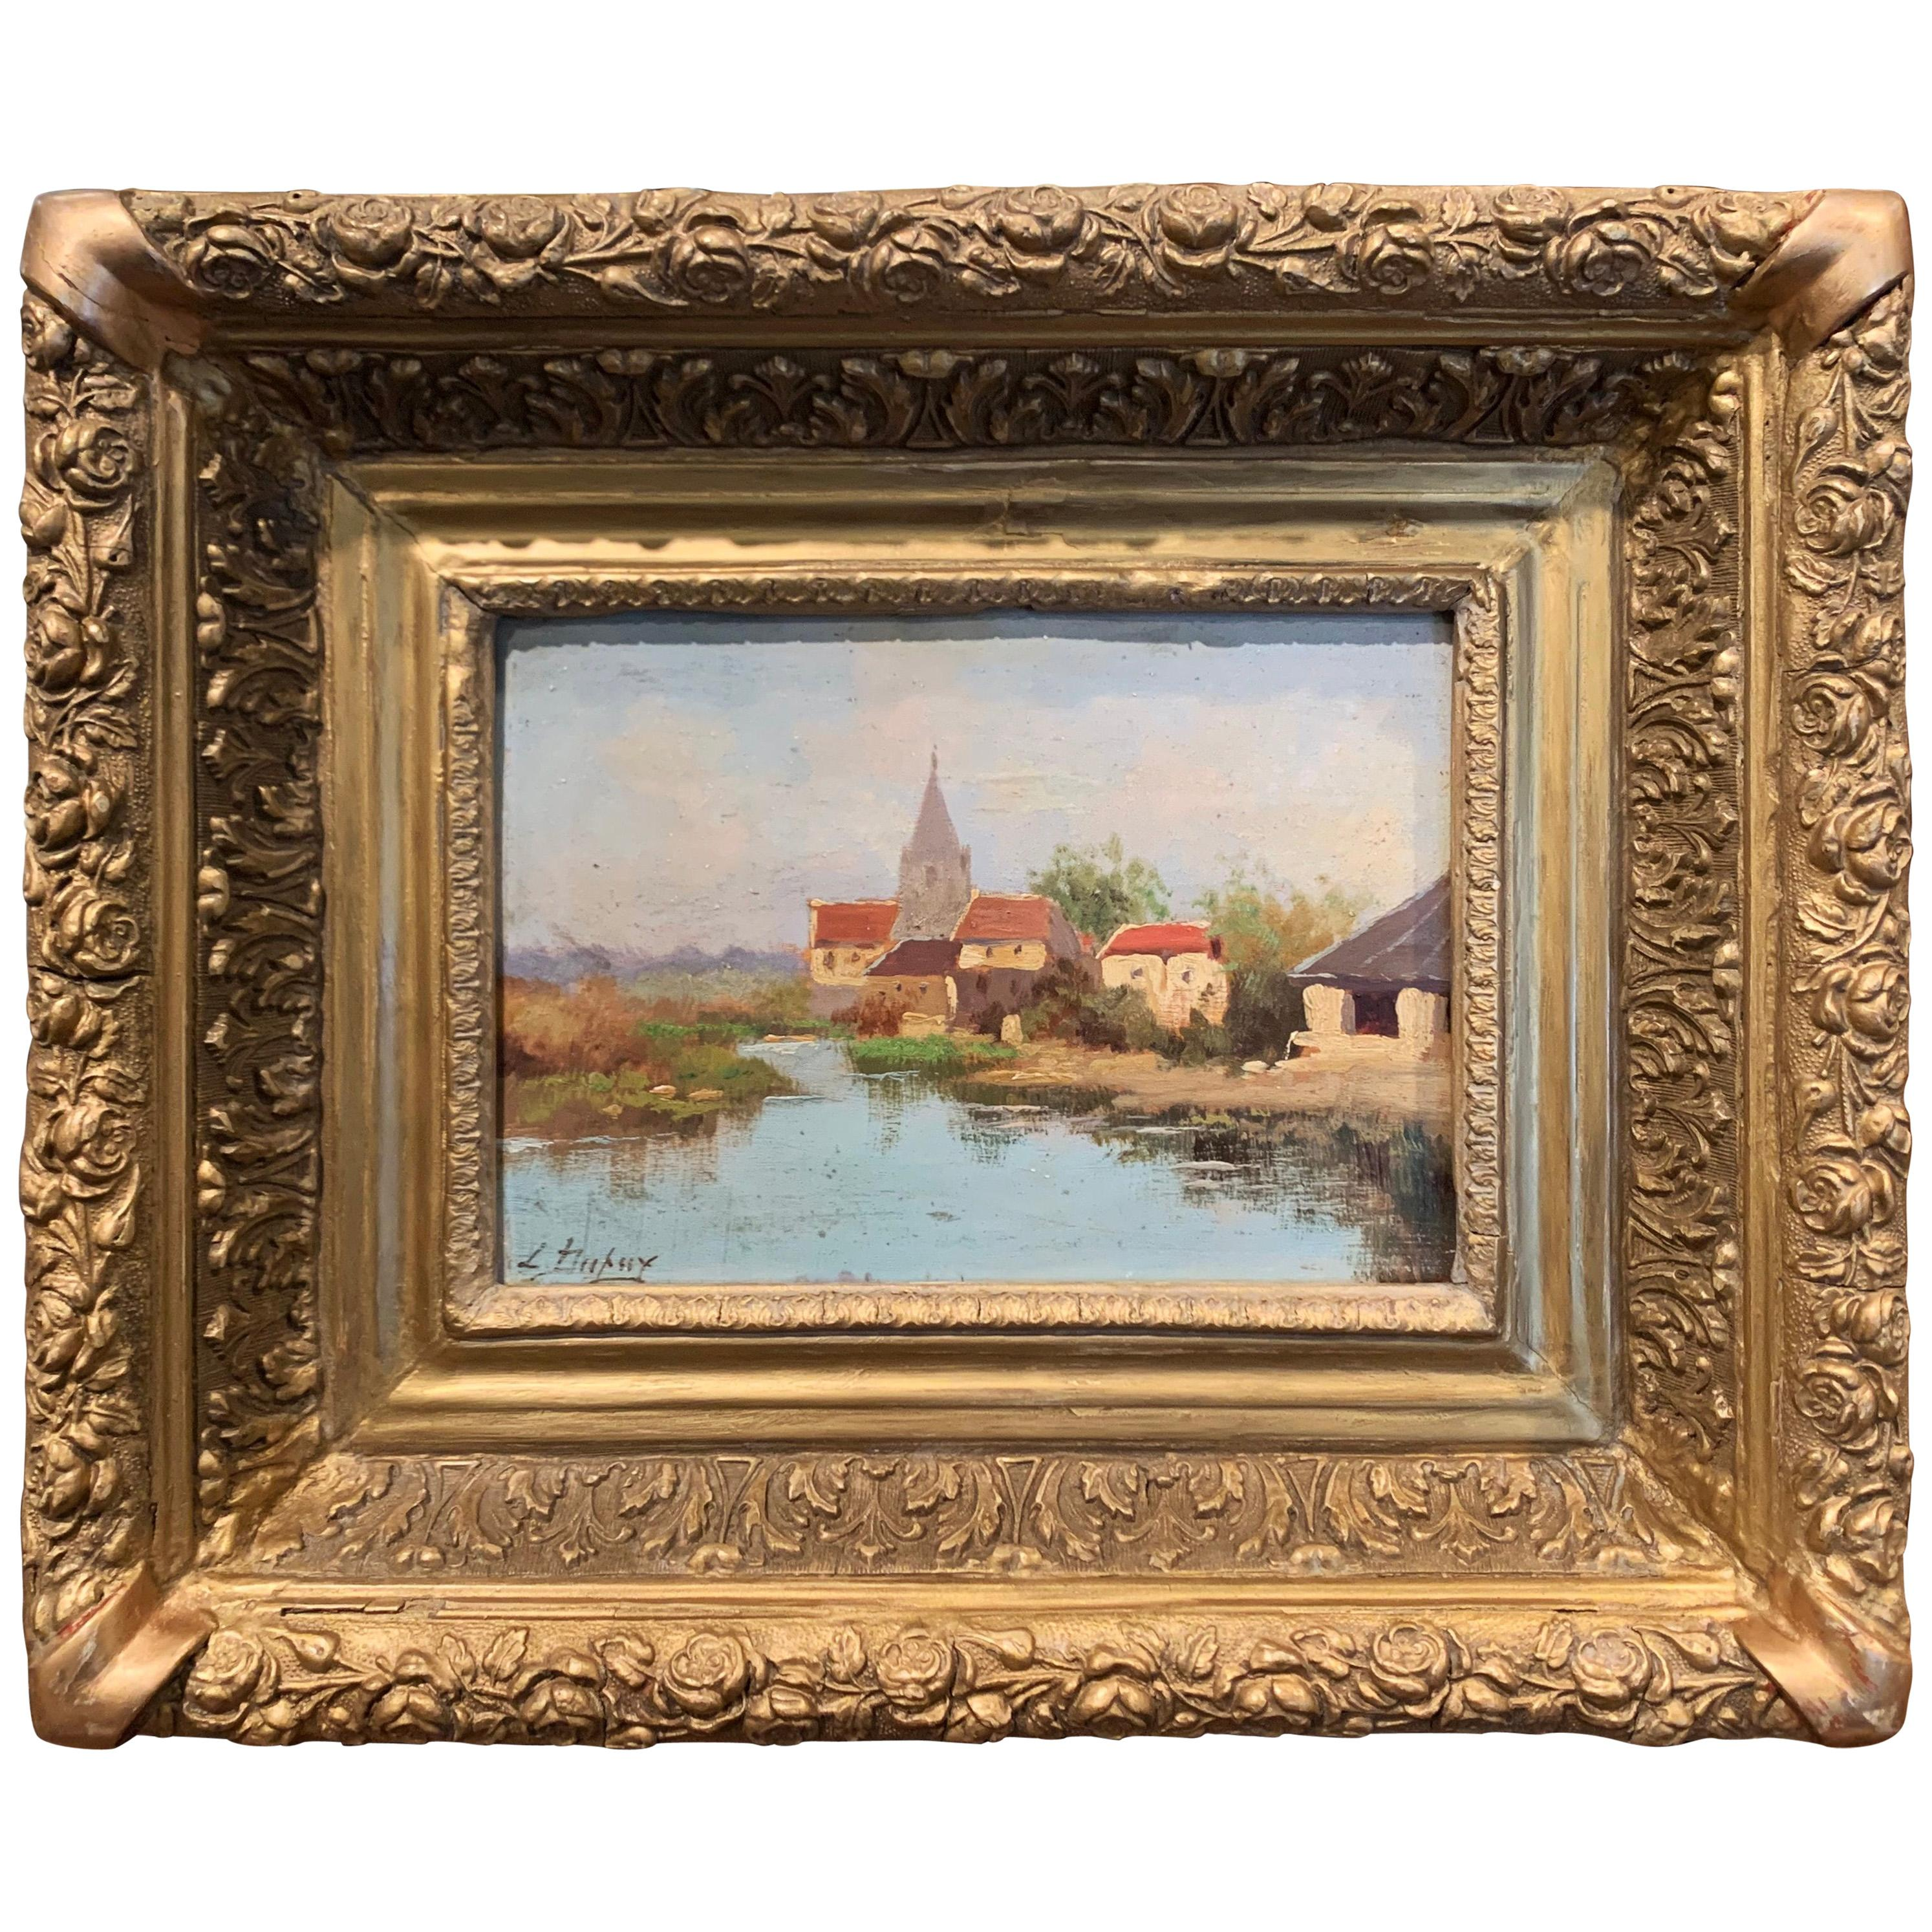 19th Century French Oil on Board Painting in Gilt Frame by E. Galien-Laloue